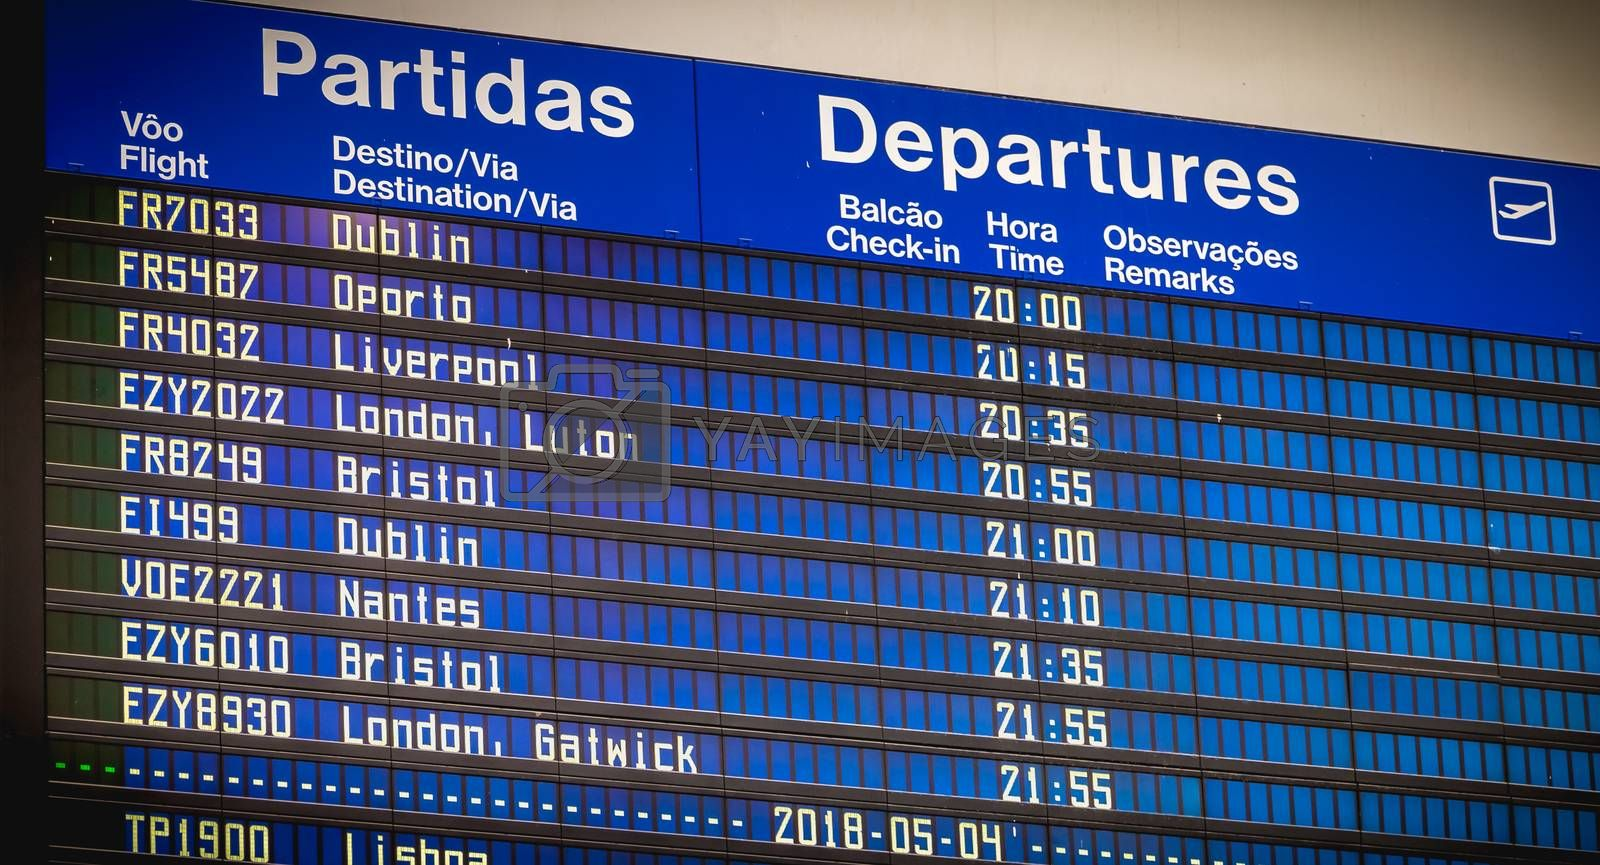 Faro, Portugal - May 3, 2018: billboards departing and arriving aircraft inside the international airport of Faro on a spring day